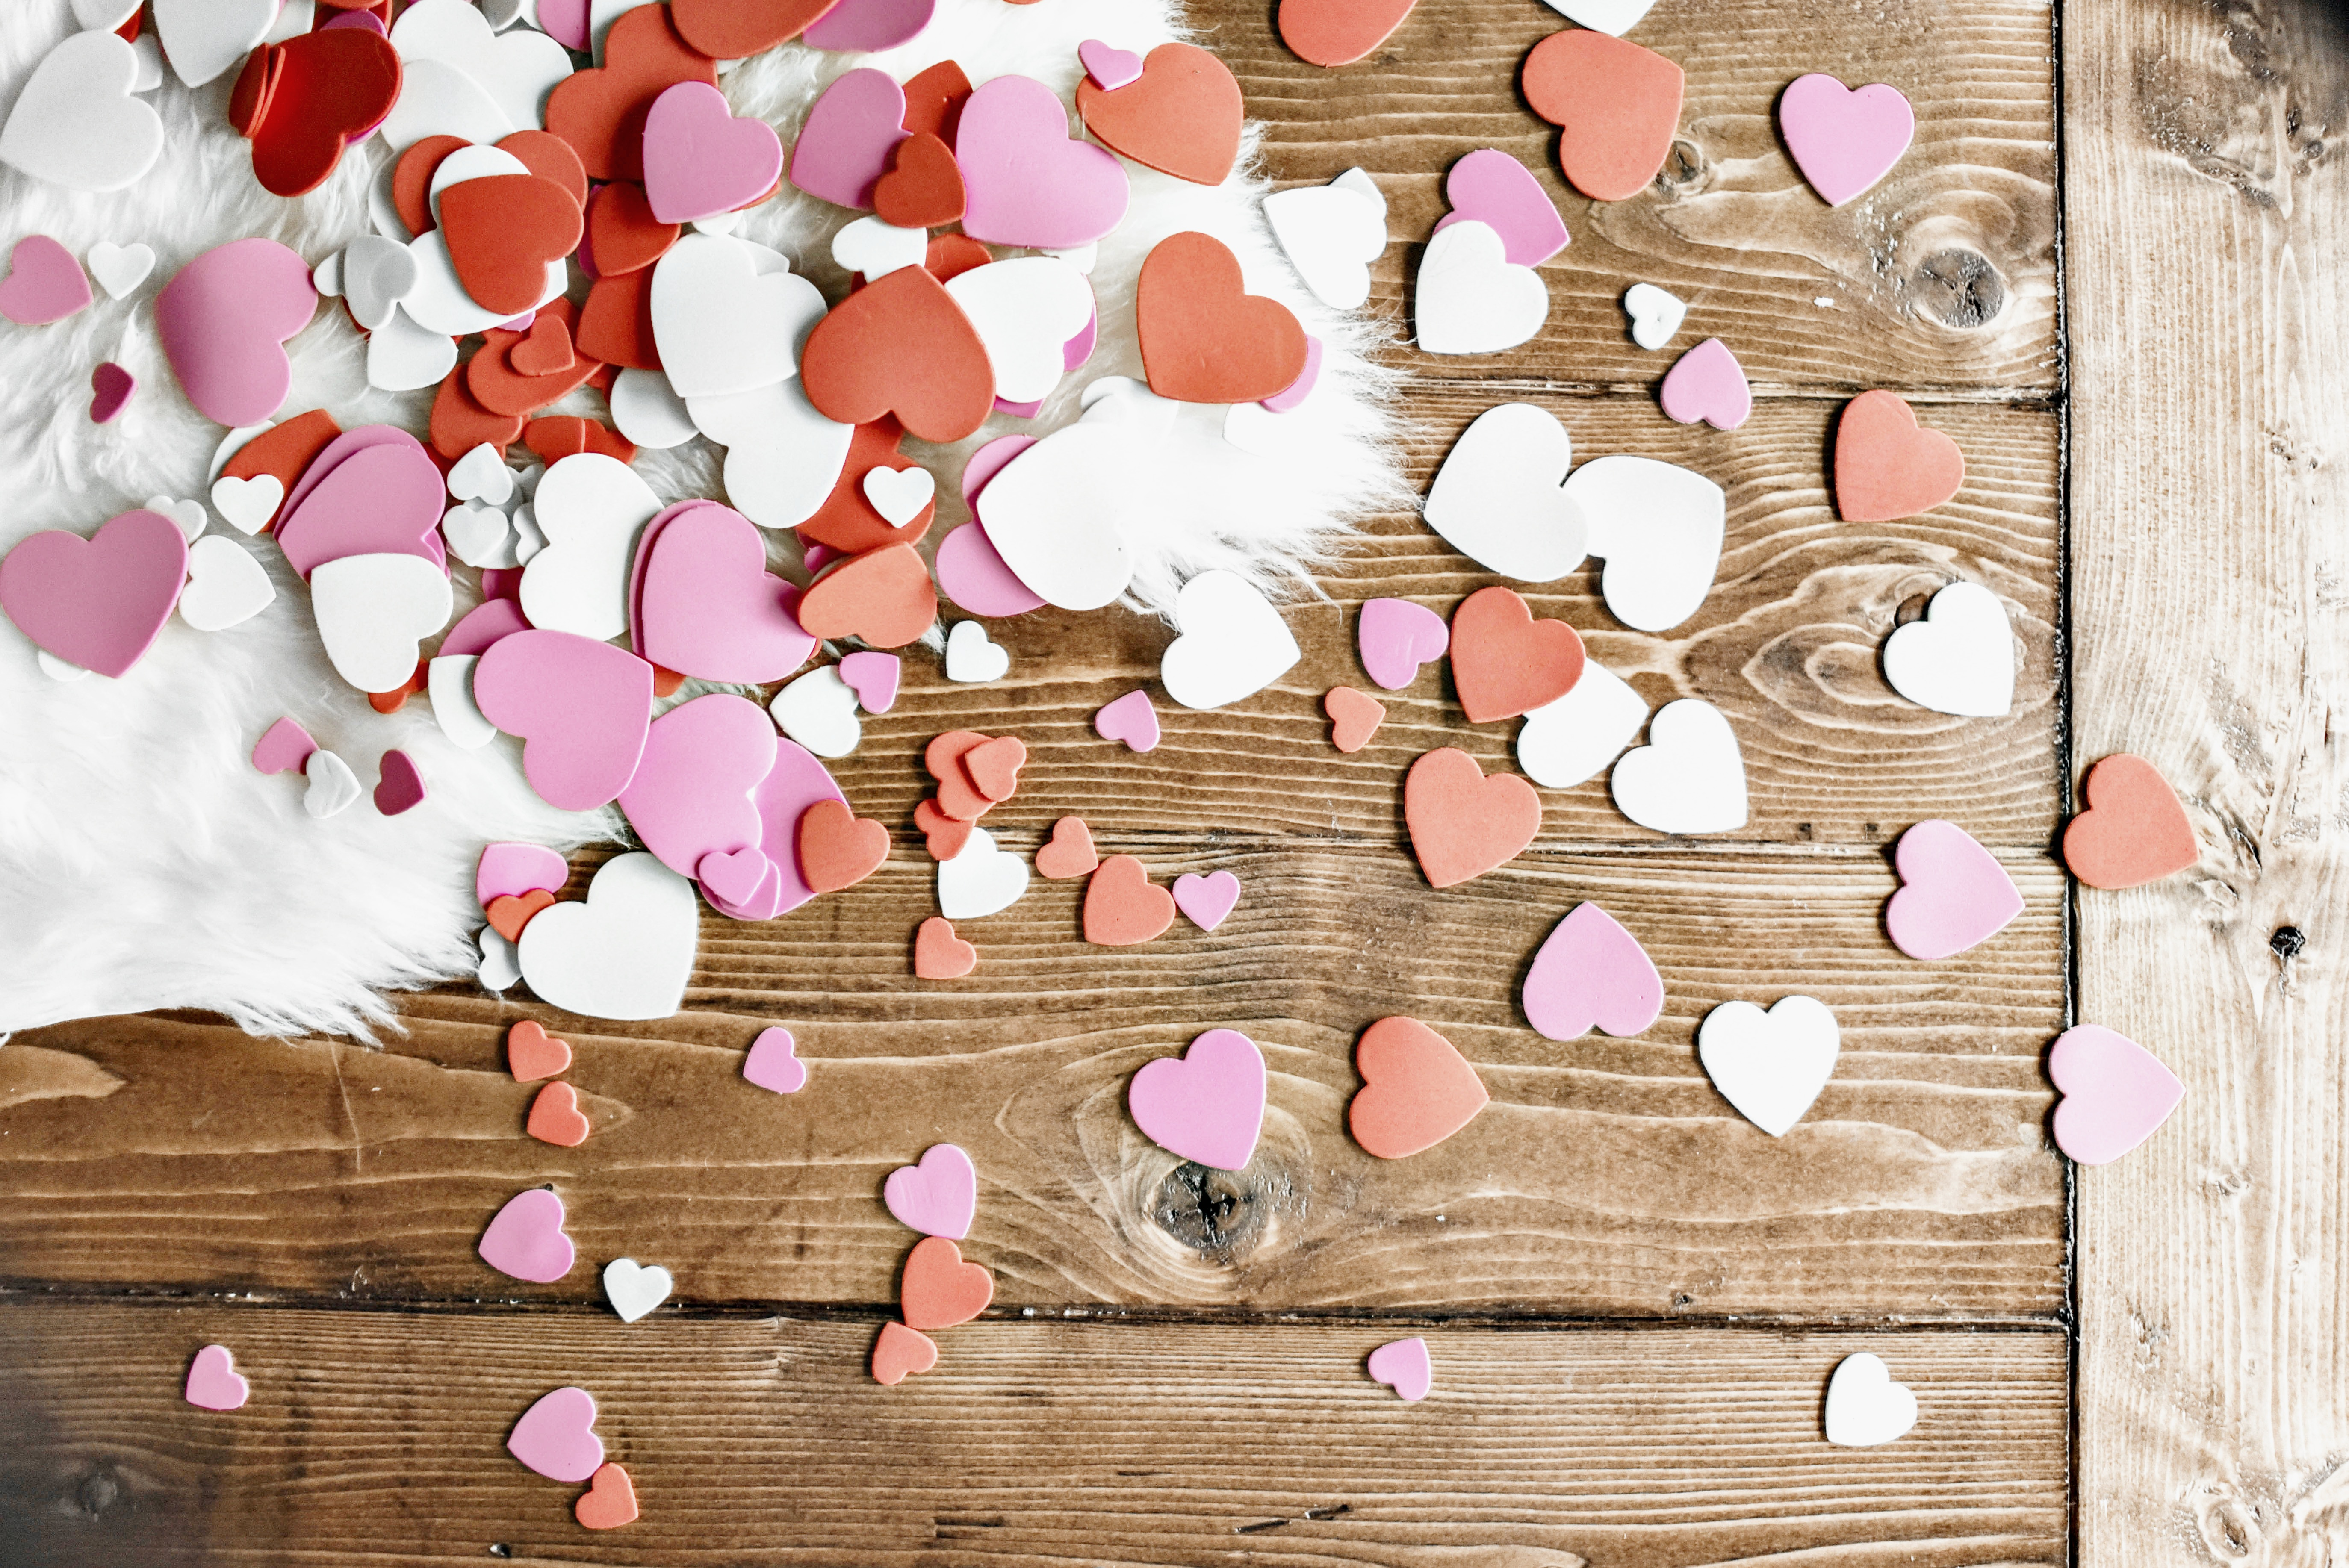 Space And Habit Valentine's Day Gifts Heart Confetti